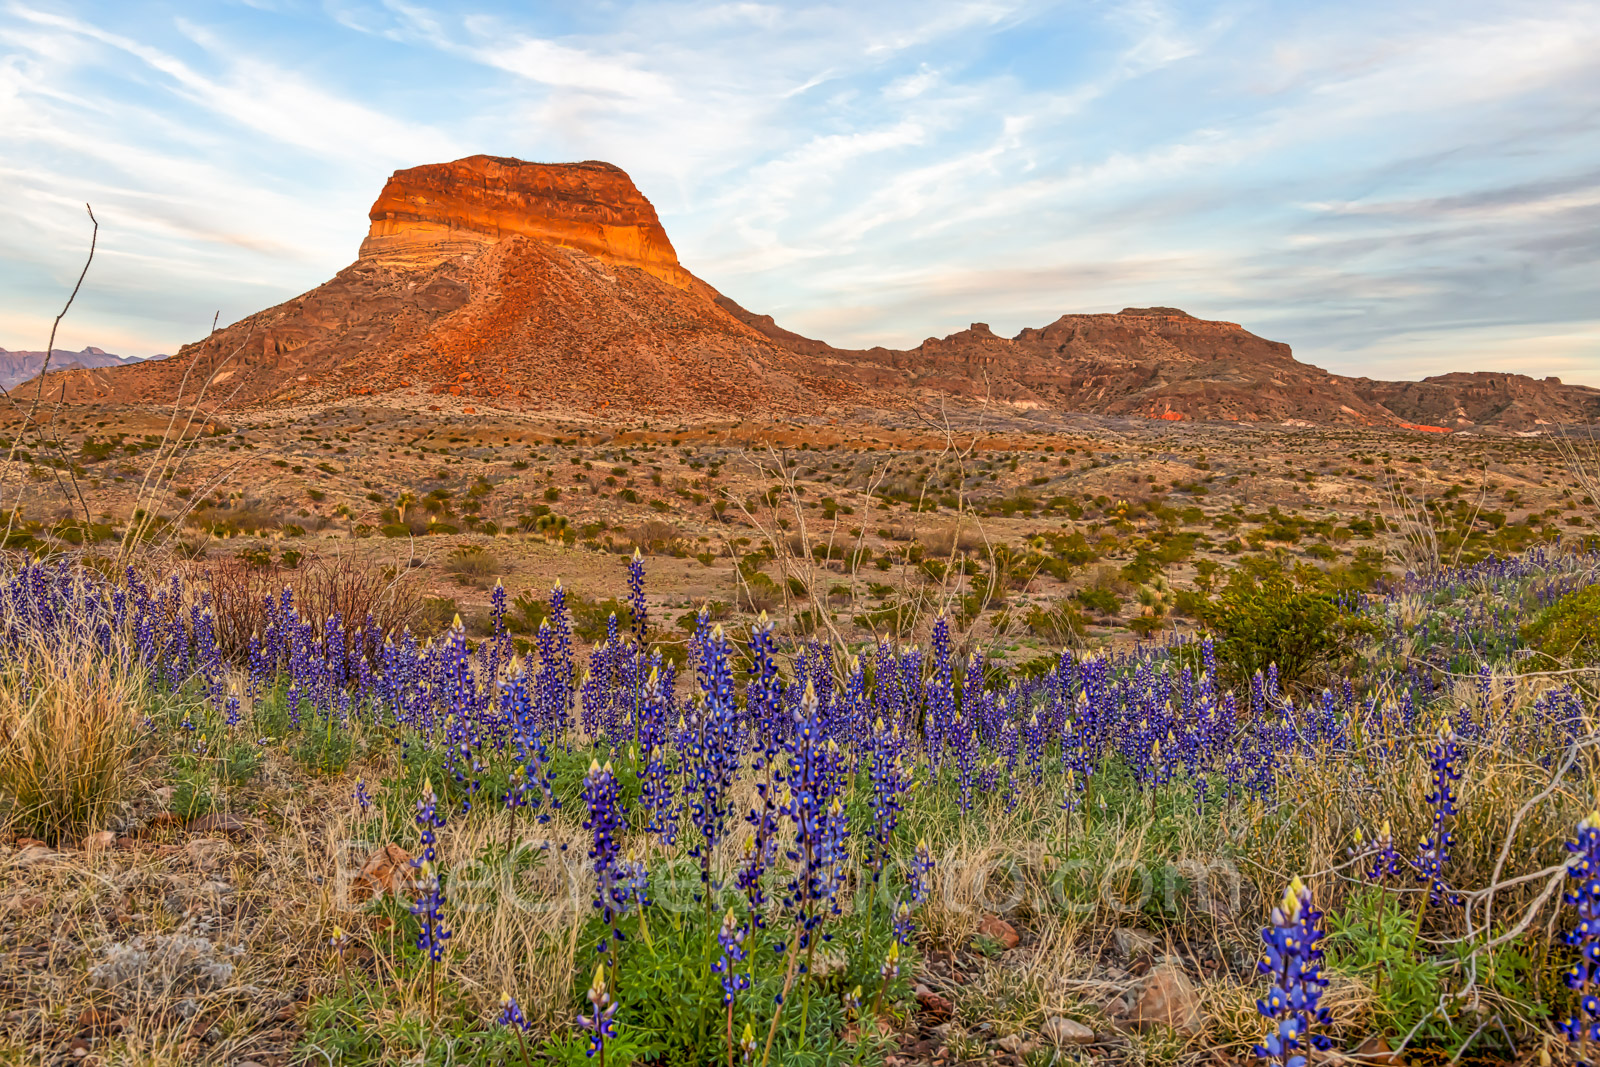 Bluebonnets, blue bonnets, images of bluebonnet, texas wildflowers, texas bluebonnets, Big Bend National Park, Big Bend, landmark, Cerro Castellan, desert, landscape, bloom, Chiso bluebonnets, Chihuah, photo